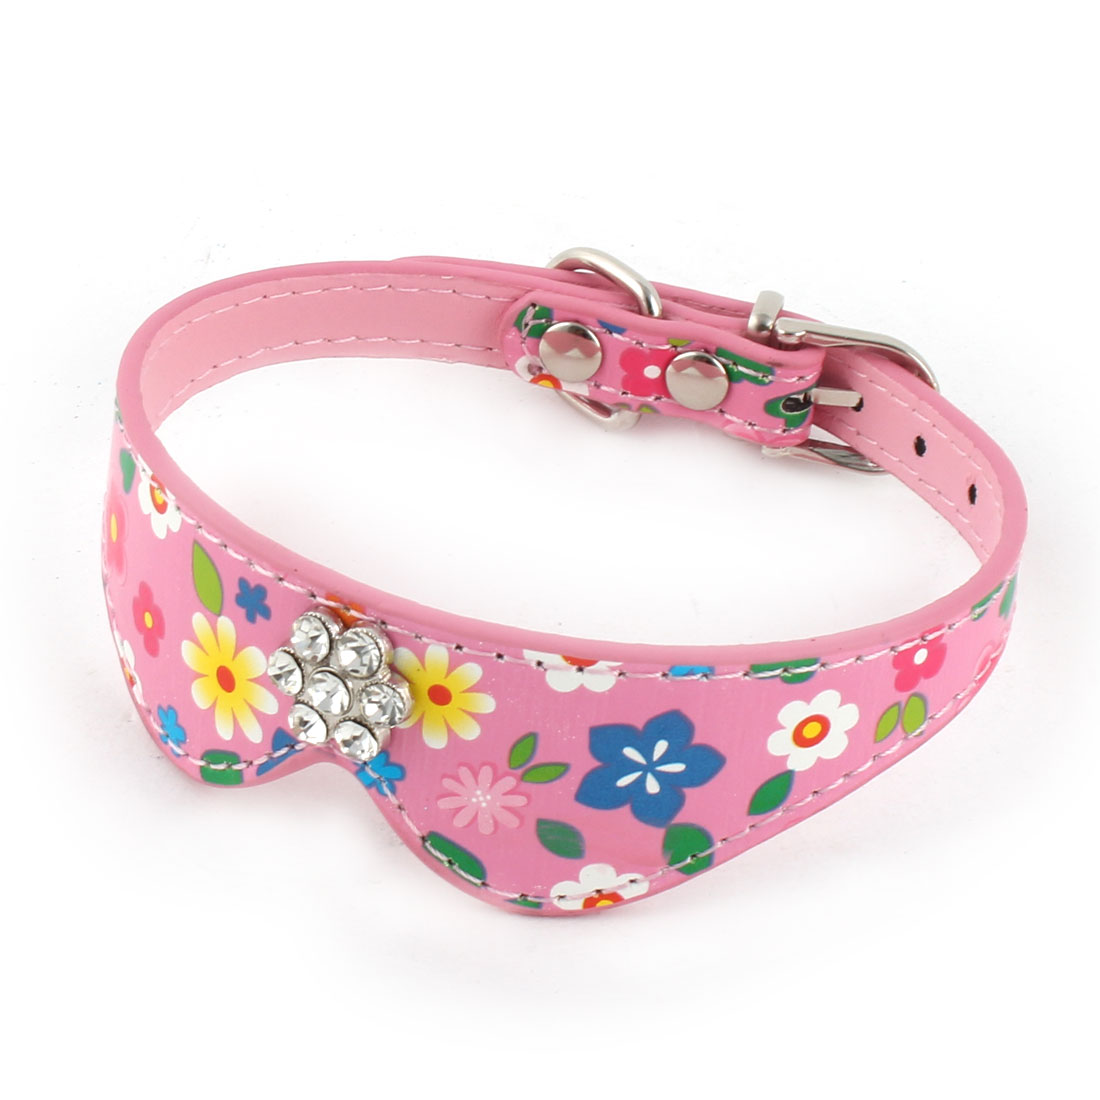 Pet Dog Cat Tie Shaped Flower Pattern Single Pin Buckle Belt Collar Strap Pink